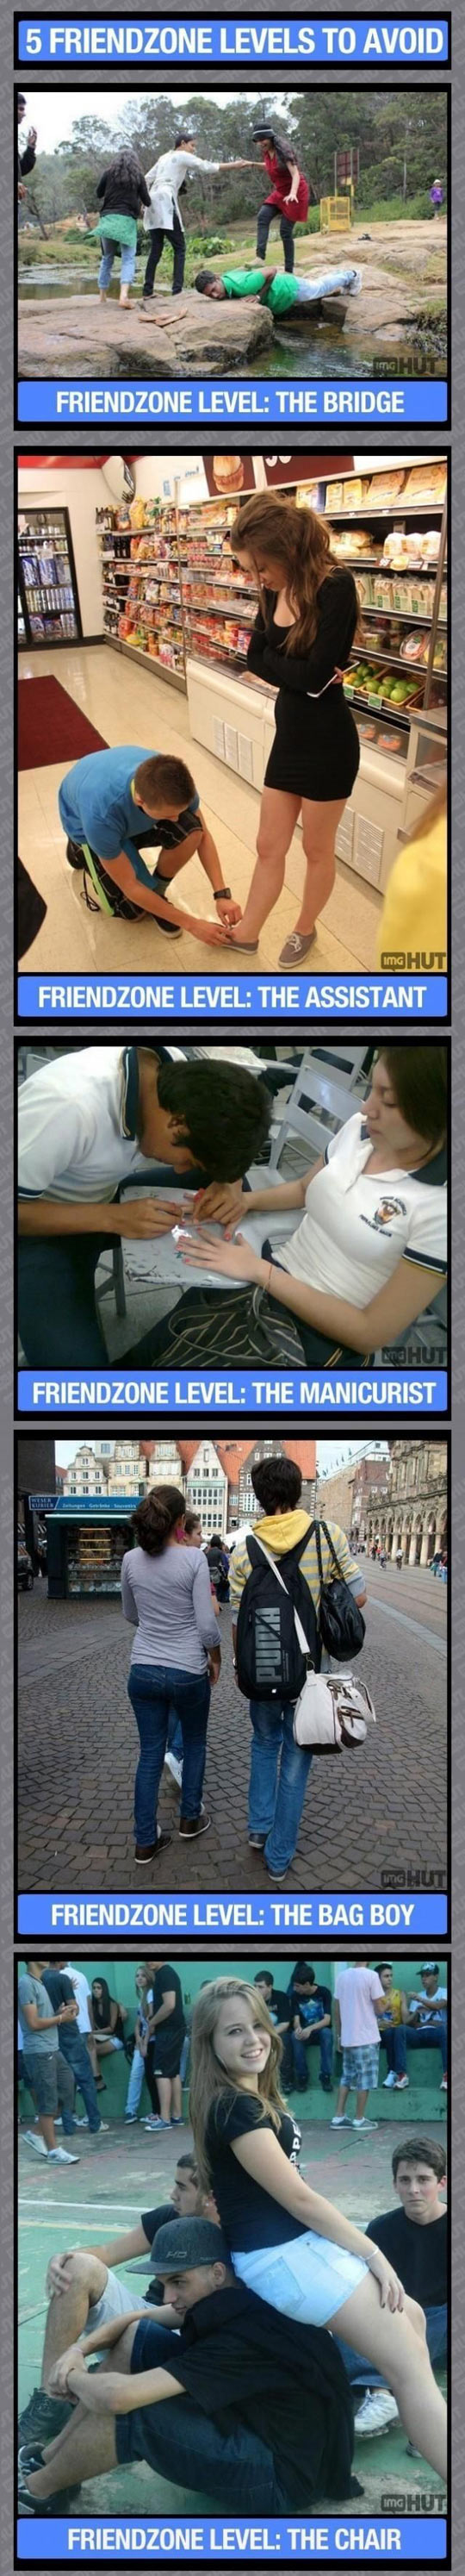 5 levels of friendzone to avoid…